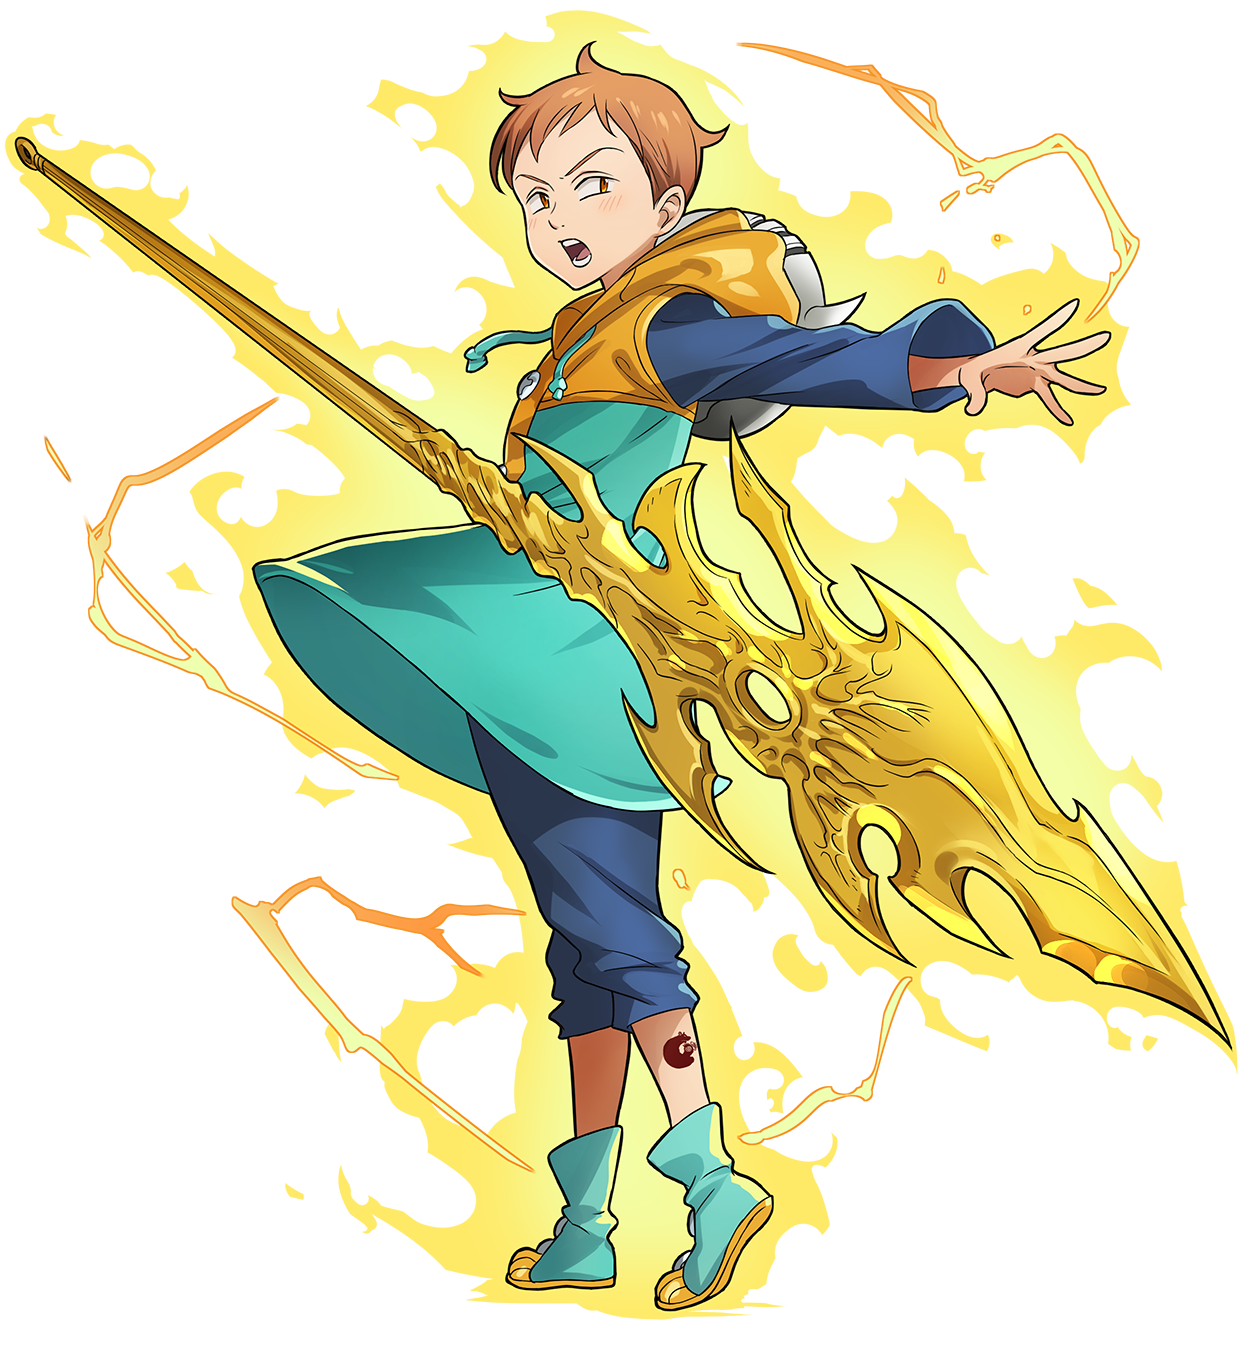 Undefined Seven Deadly Sins Anime Anime King Anime Characters